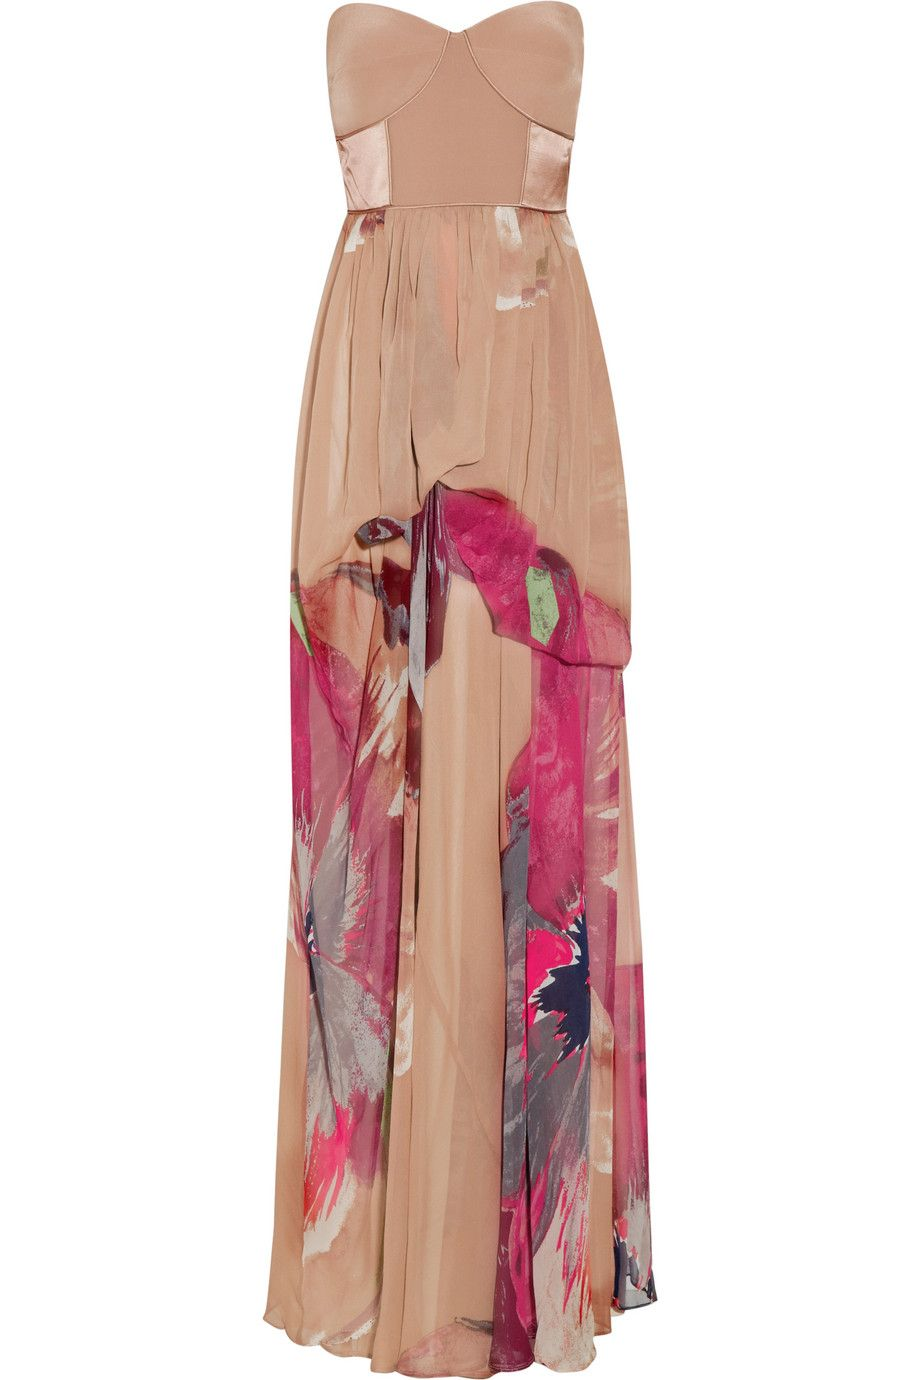 1000  images about Maxi Dresses on Pinterest  Popsicles Print ...